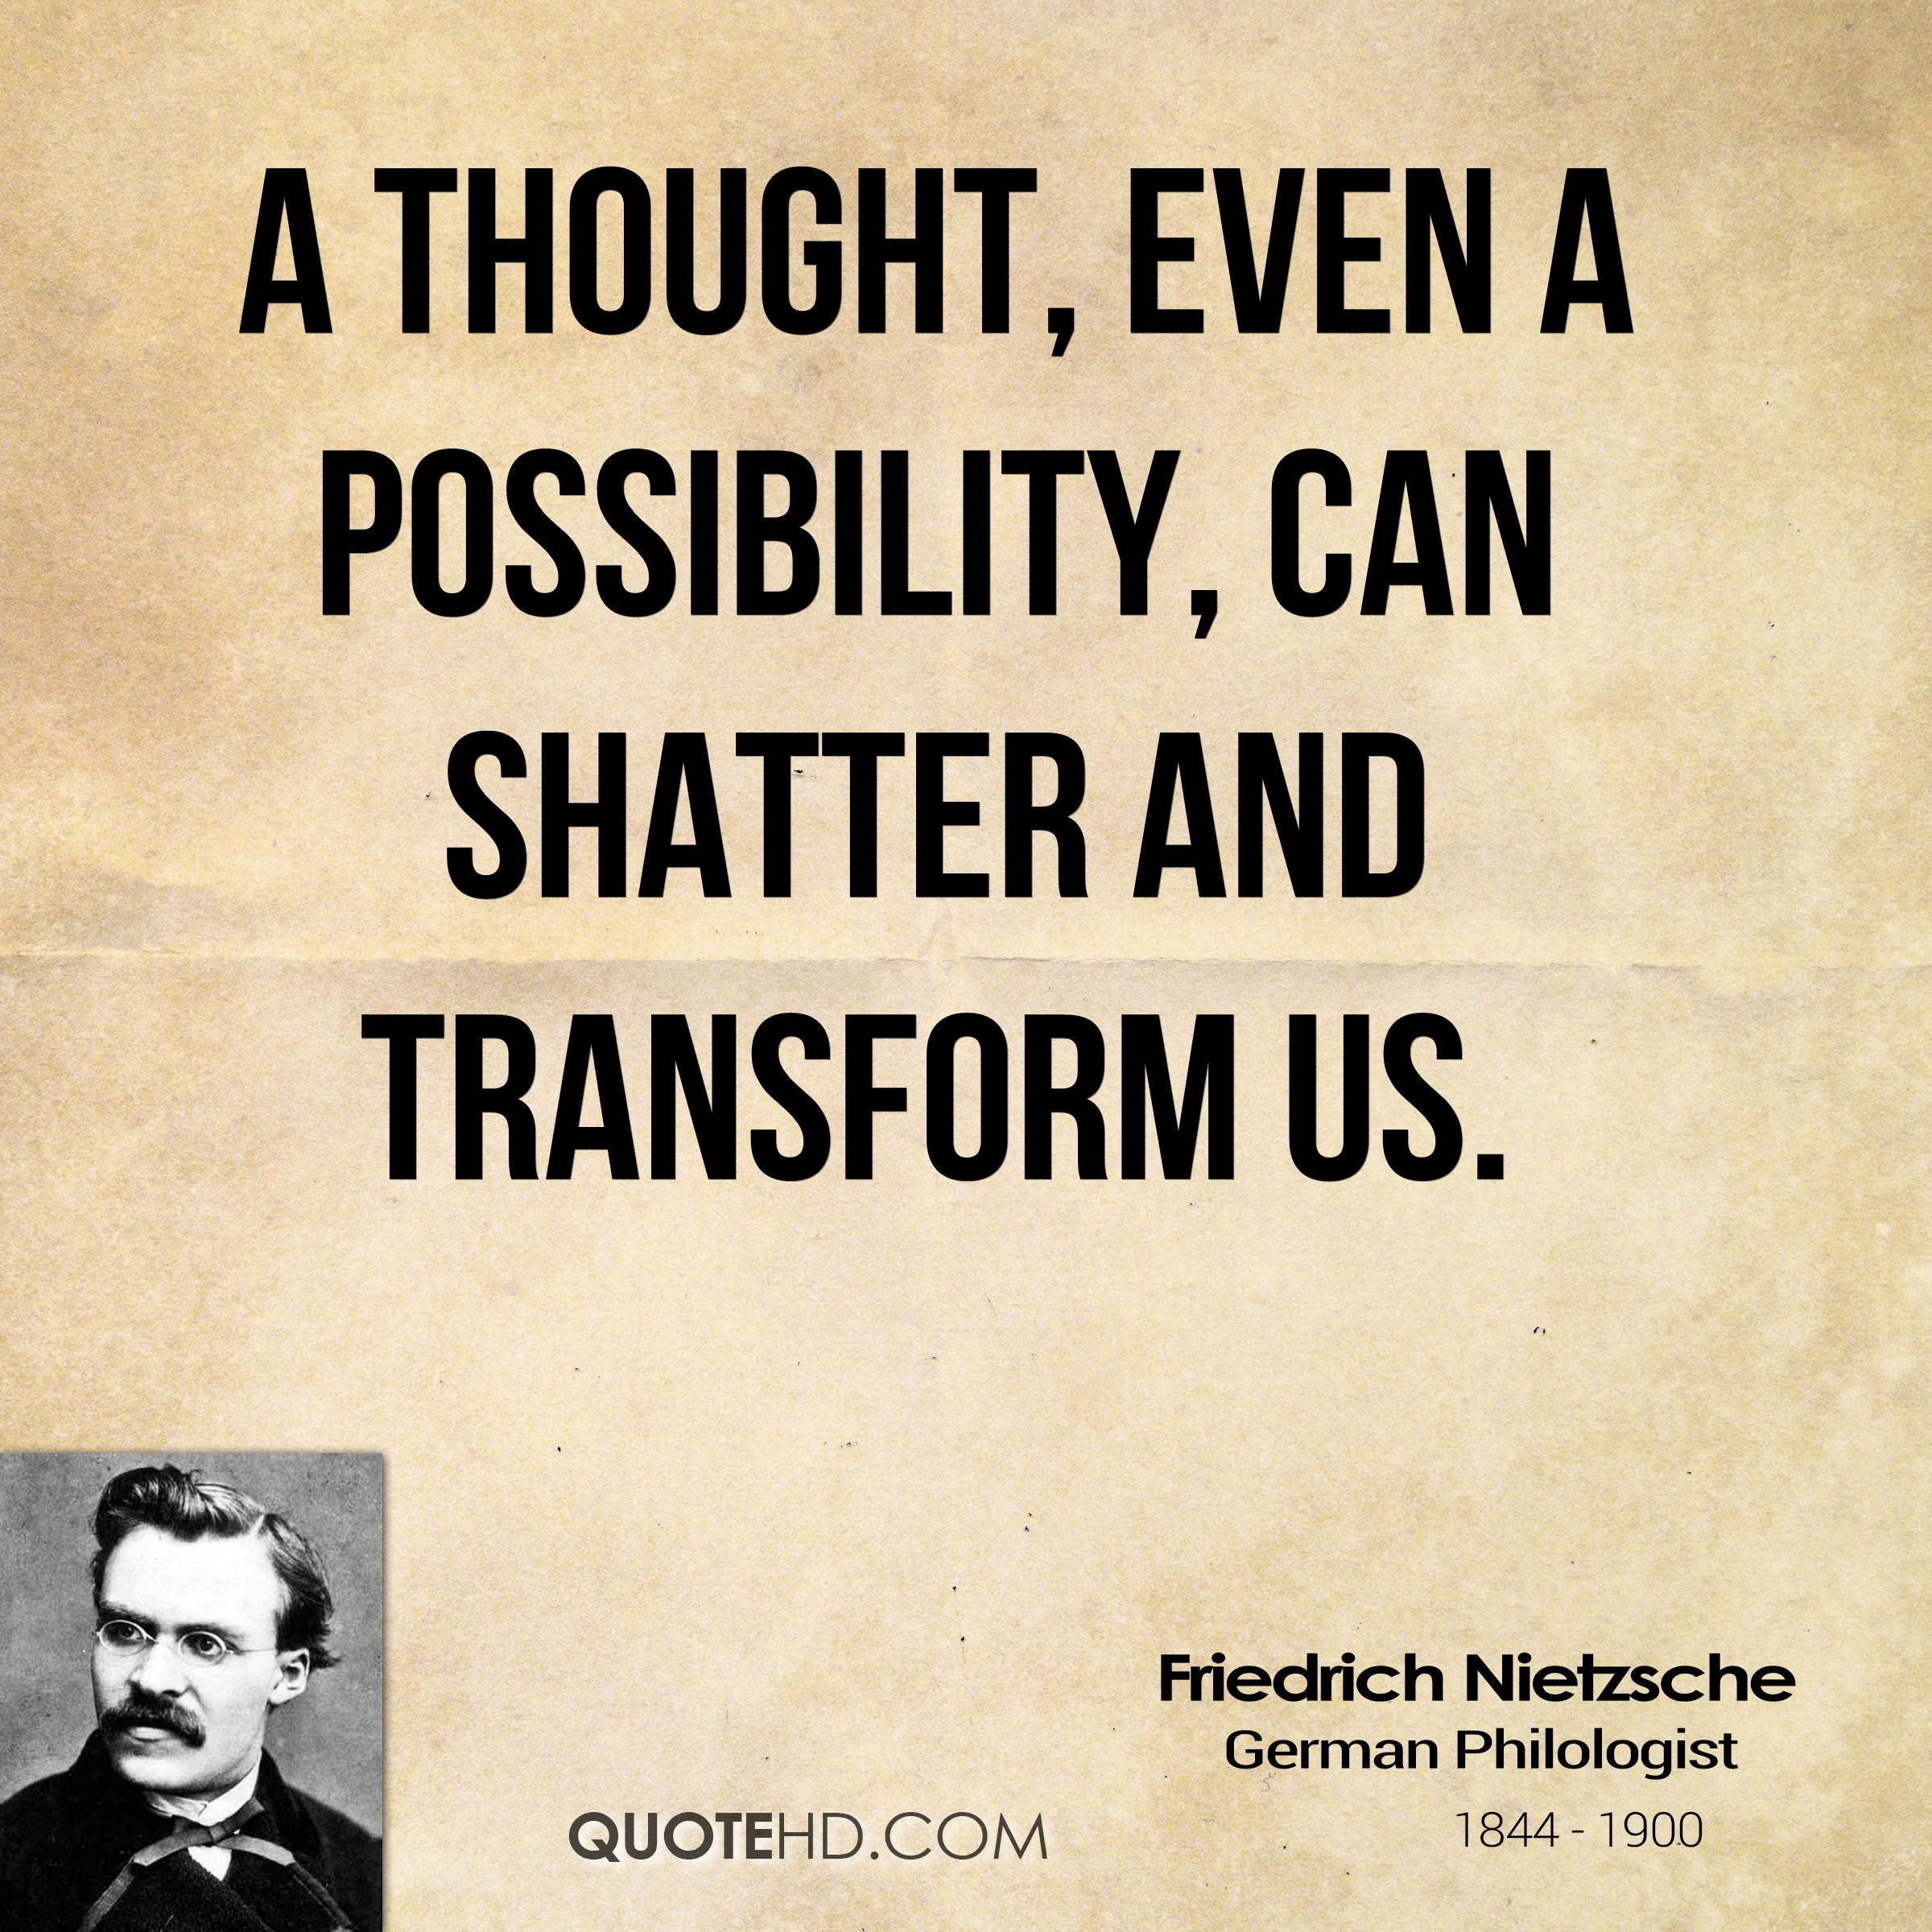 A thought, even a possibility, can shatter and transform us.